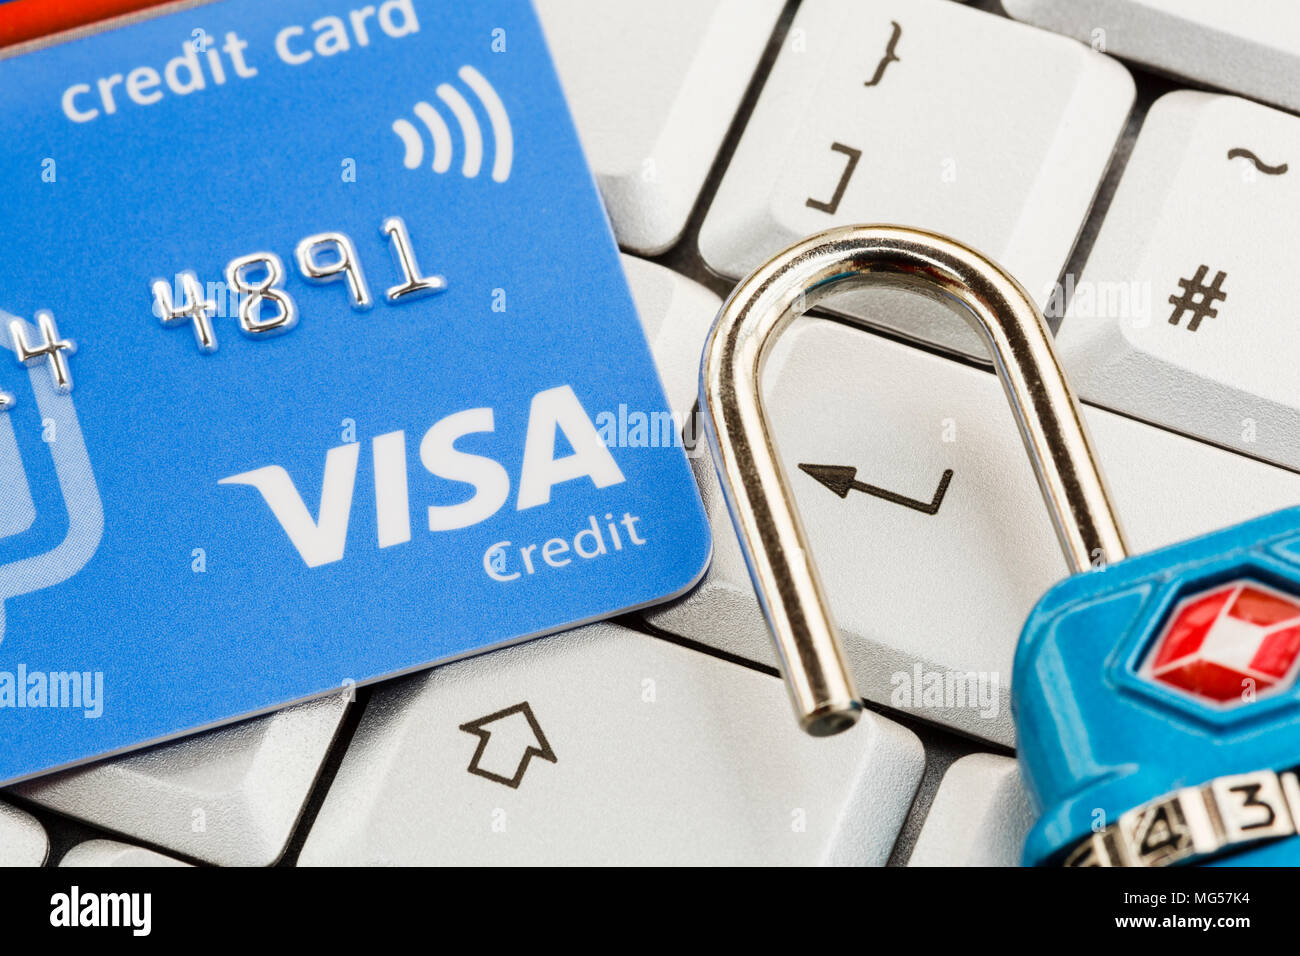 Visa contactless credit card on a keyboard with enter key and open padlock. Online shopping internet cyber security concept. England UK Britain Stock Photo